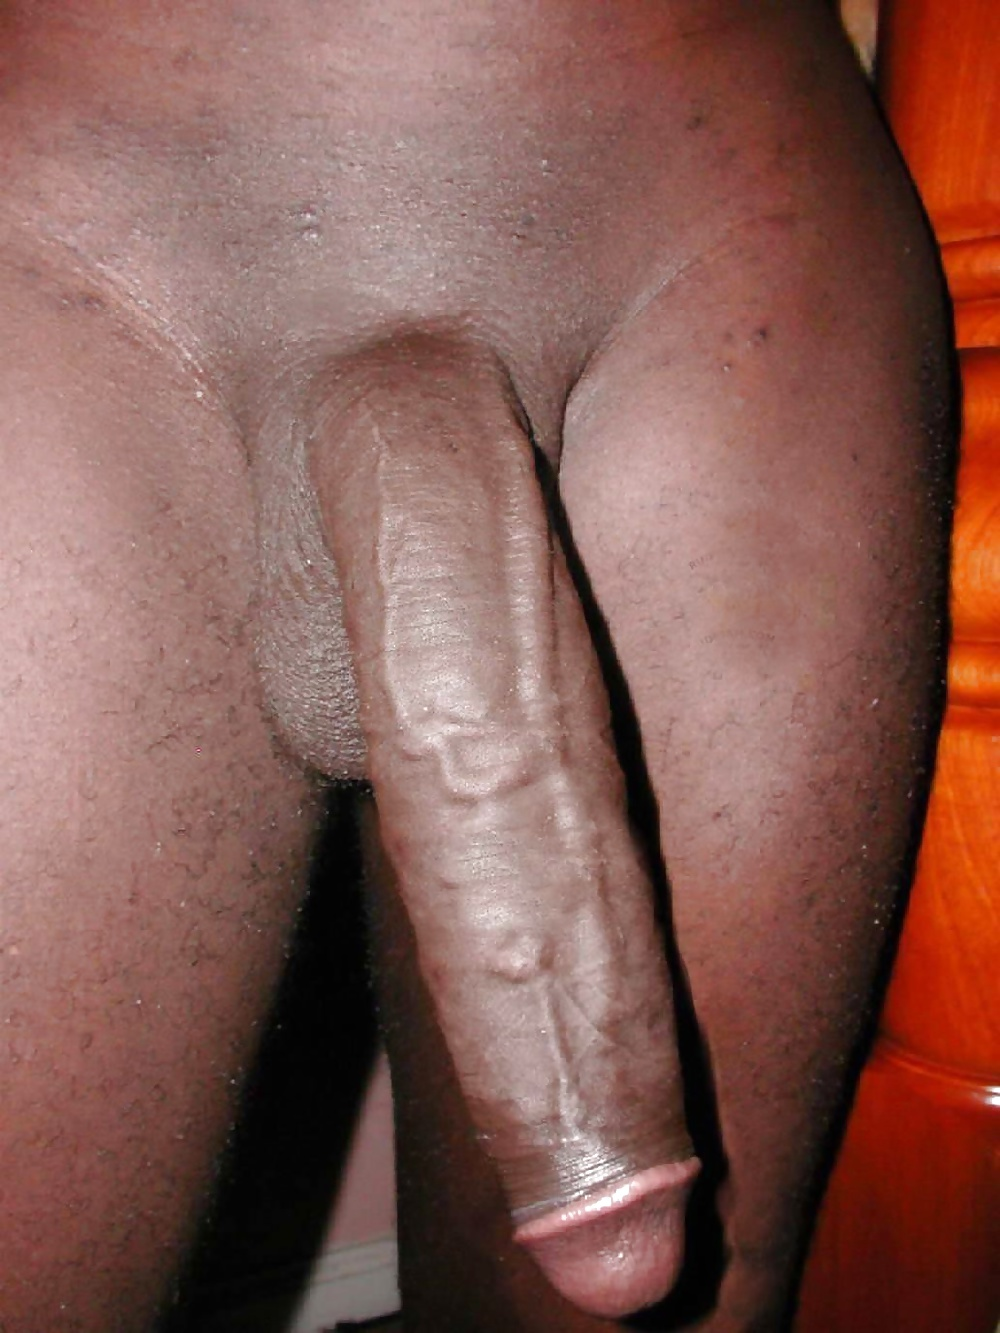 from Marco wet gays giving head assfucking